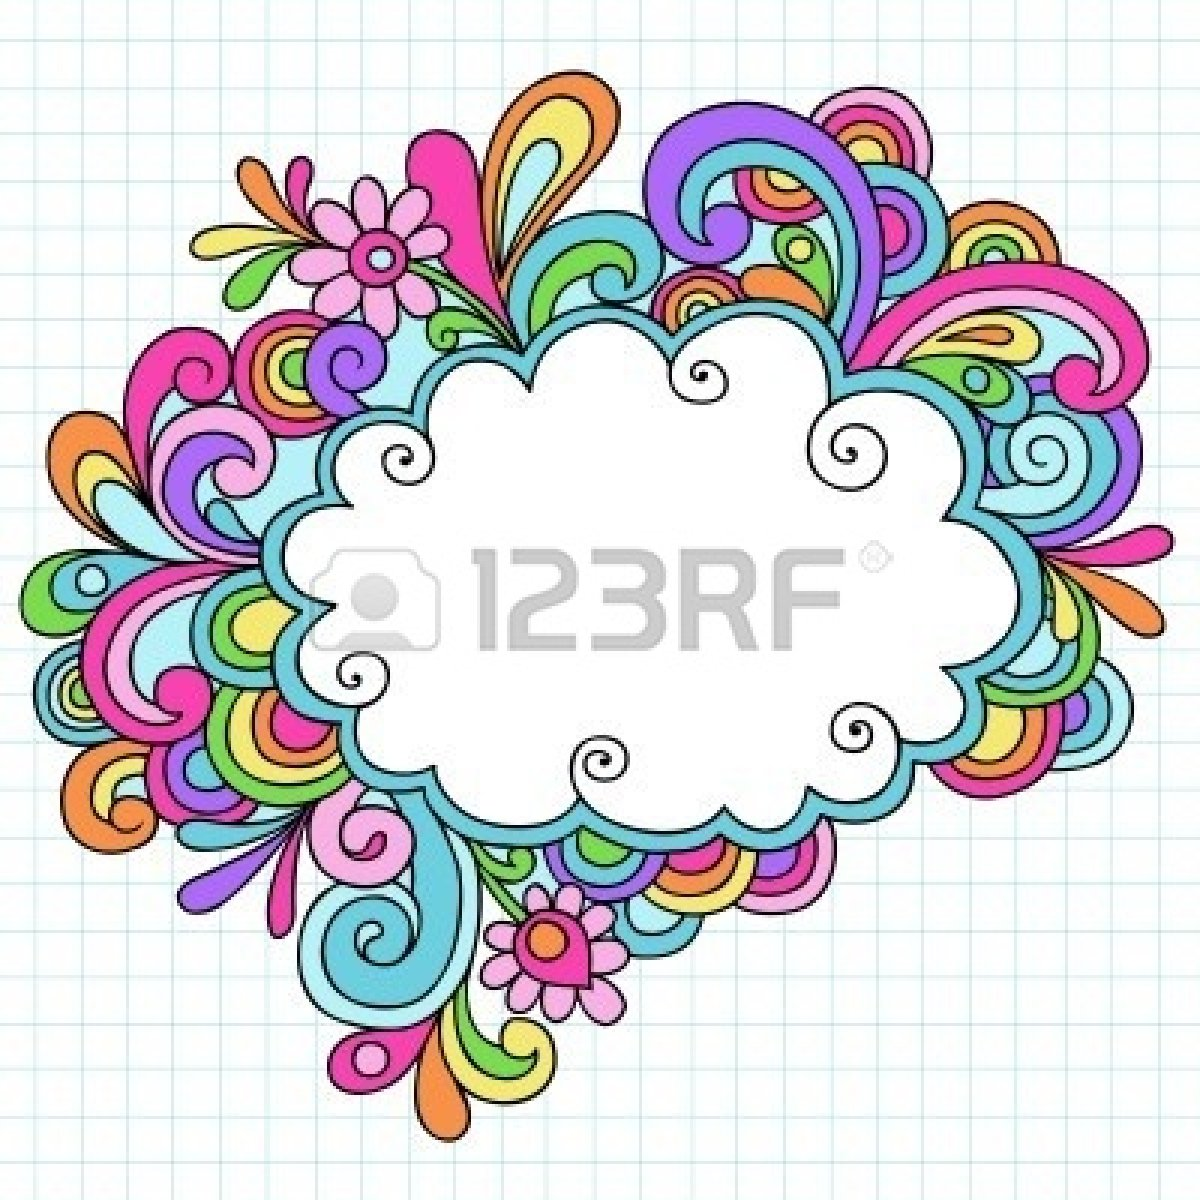 Blue Flower clipart groovy Flower  Groovy Drawn Circular